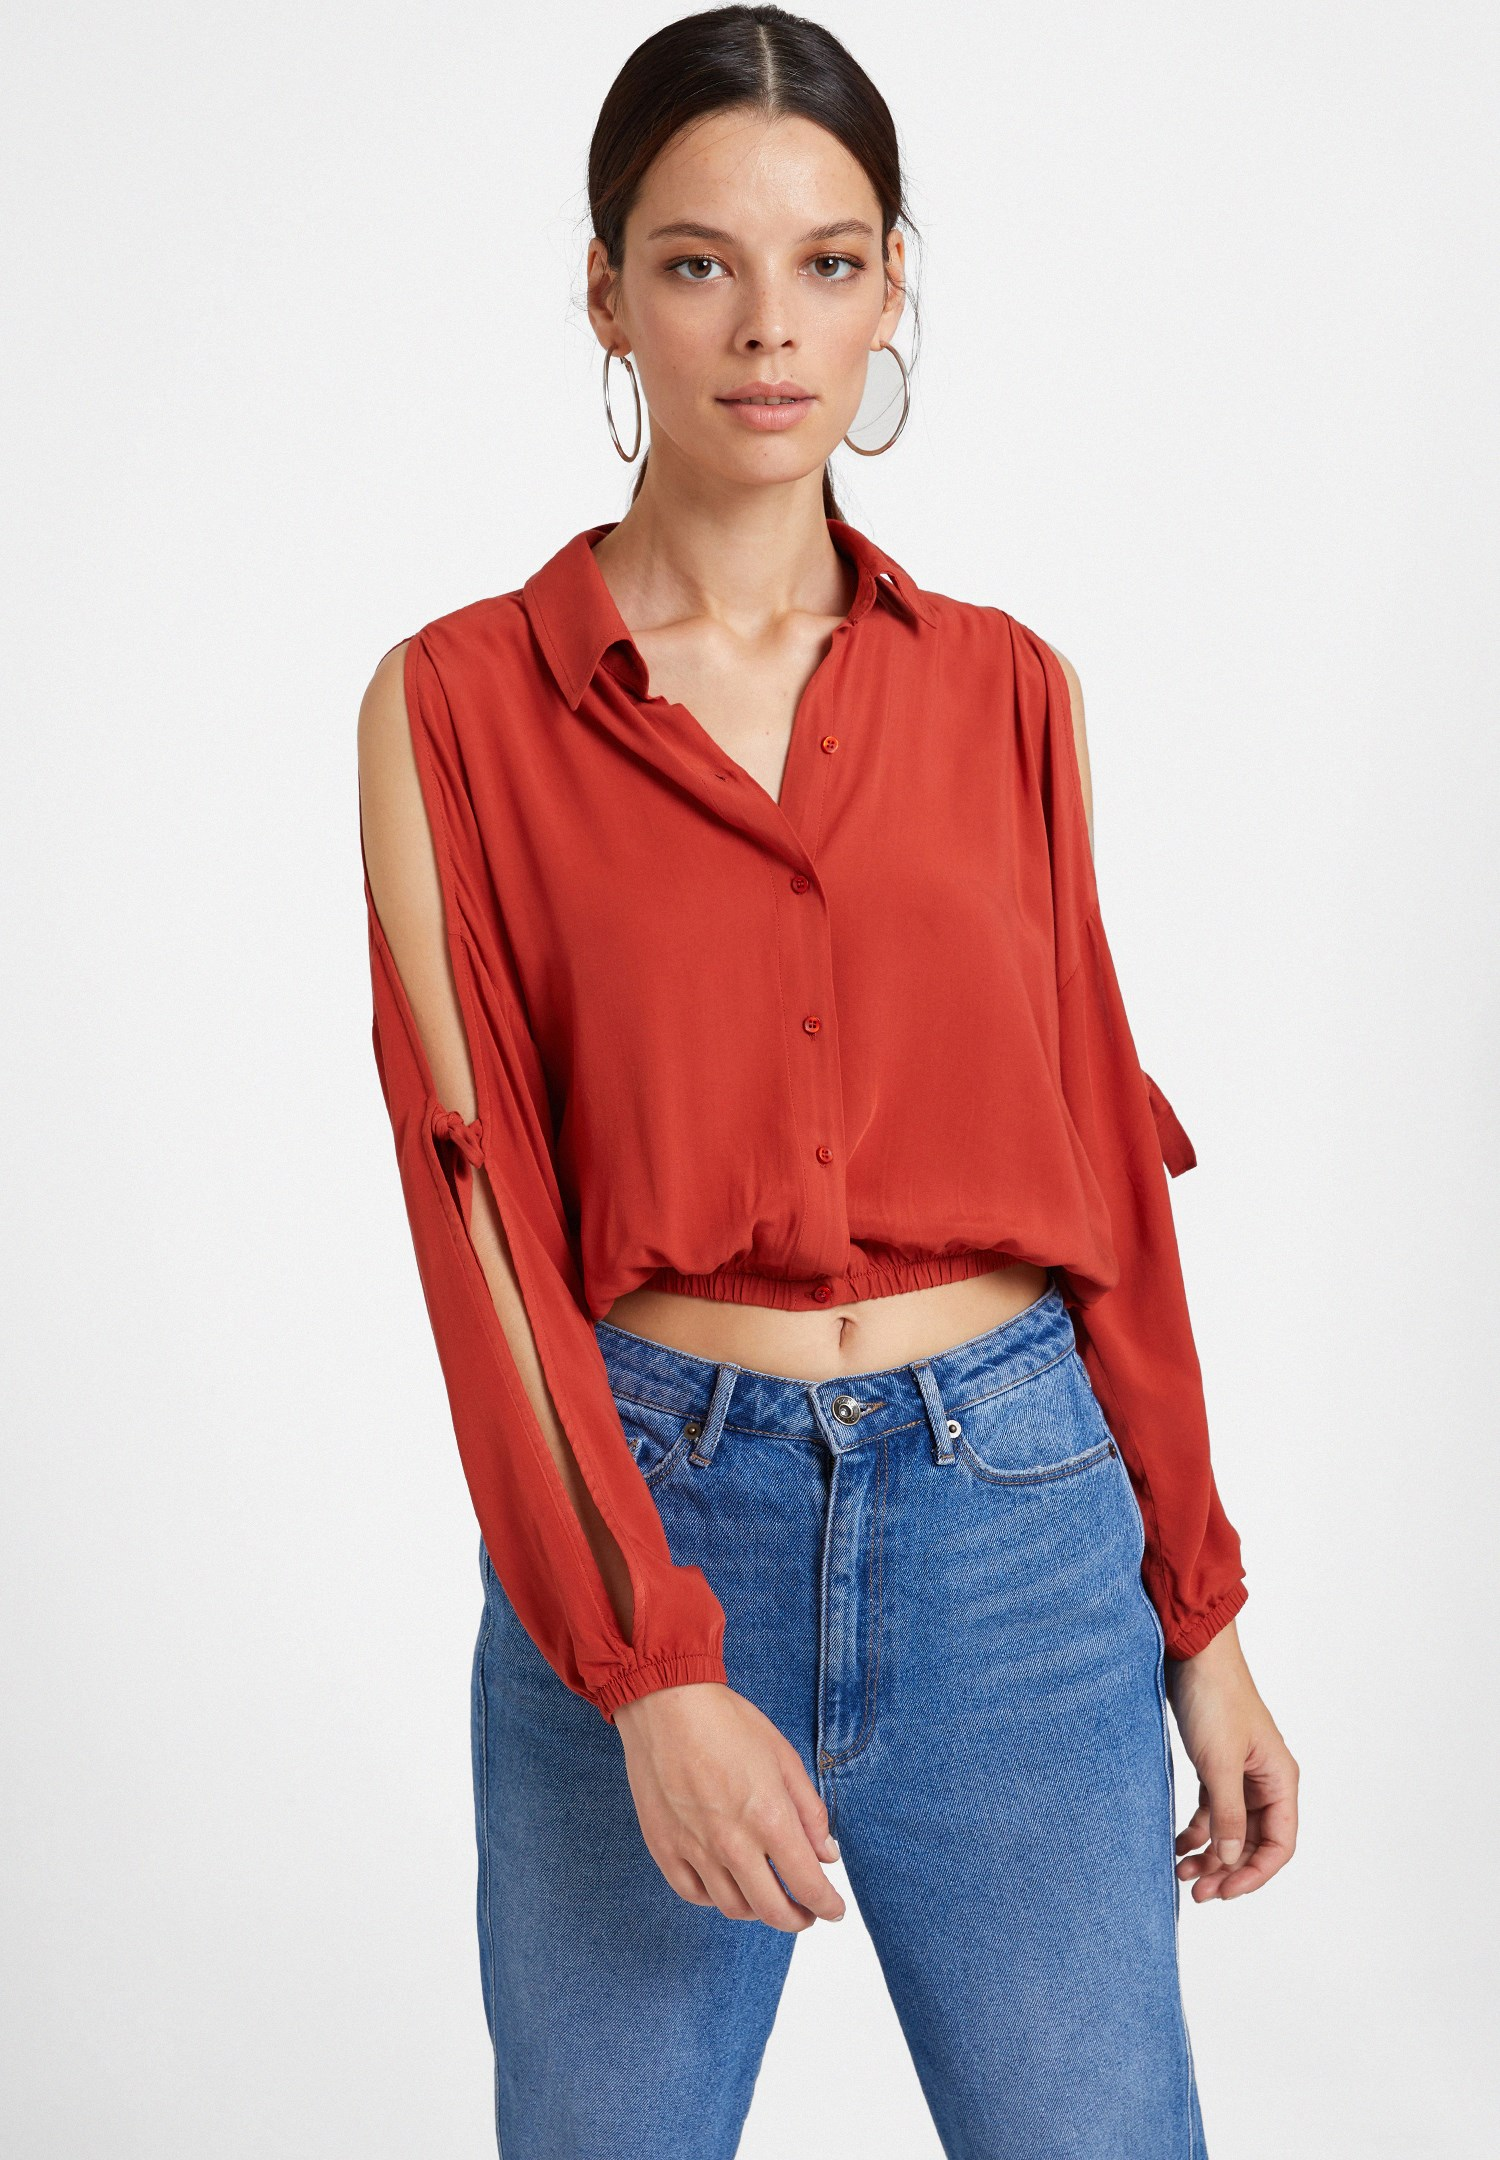 Women Red Long Sleeve Shirt with Details